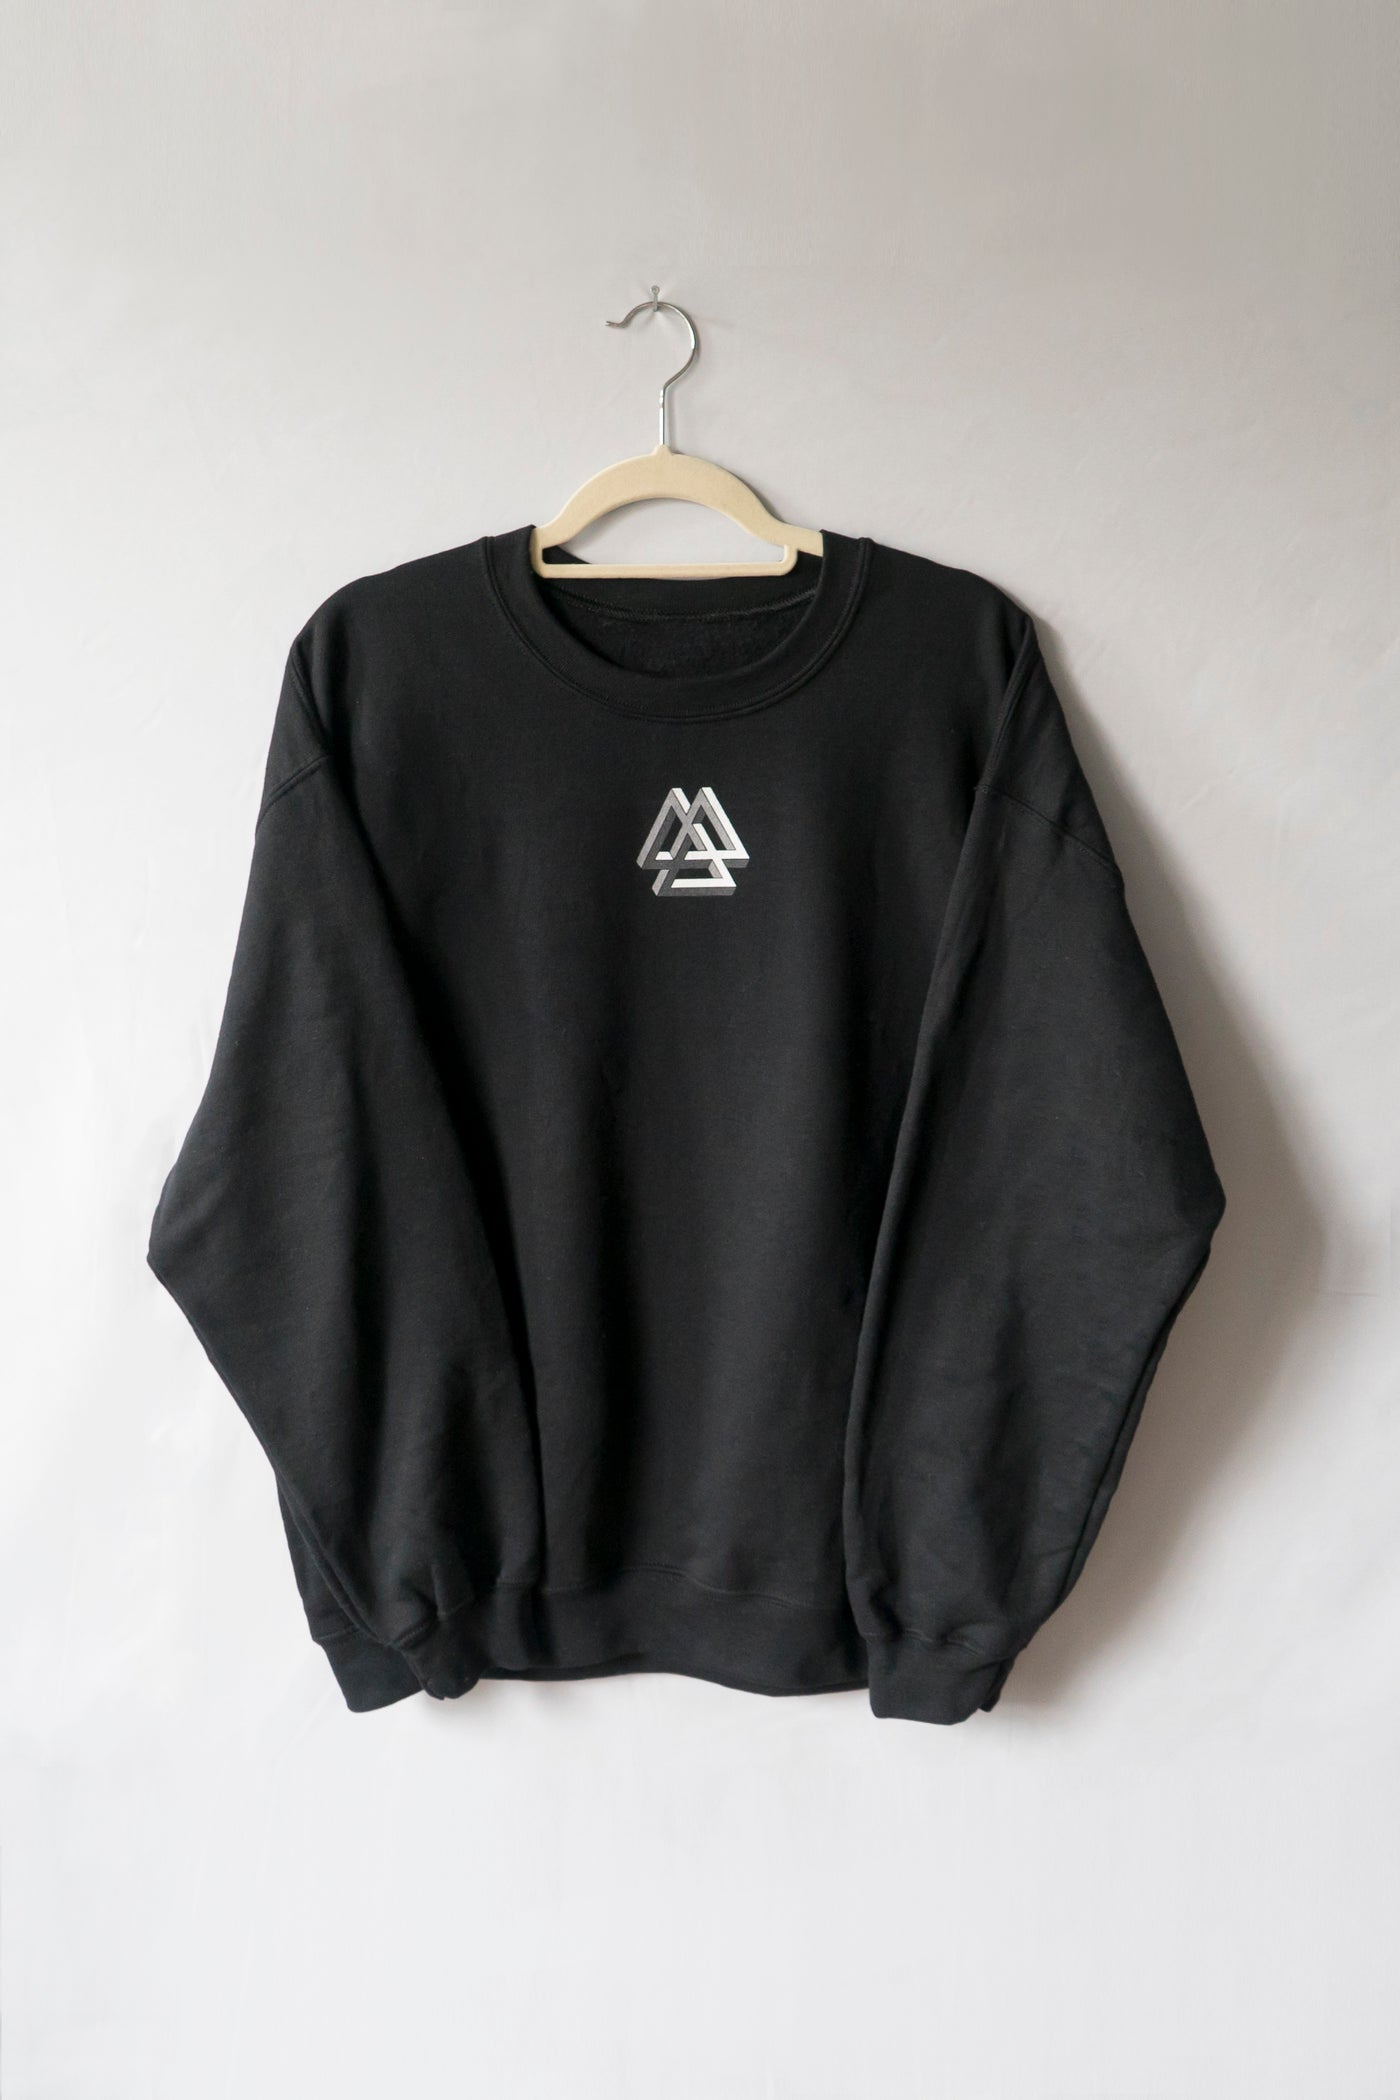 Valknut Viking Protection Symbol - Unisex Sweatshirt (Midnight)